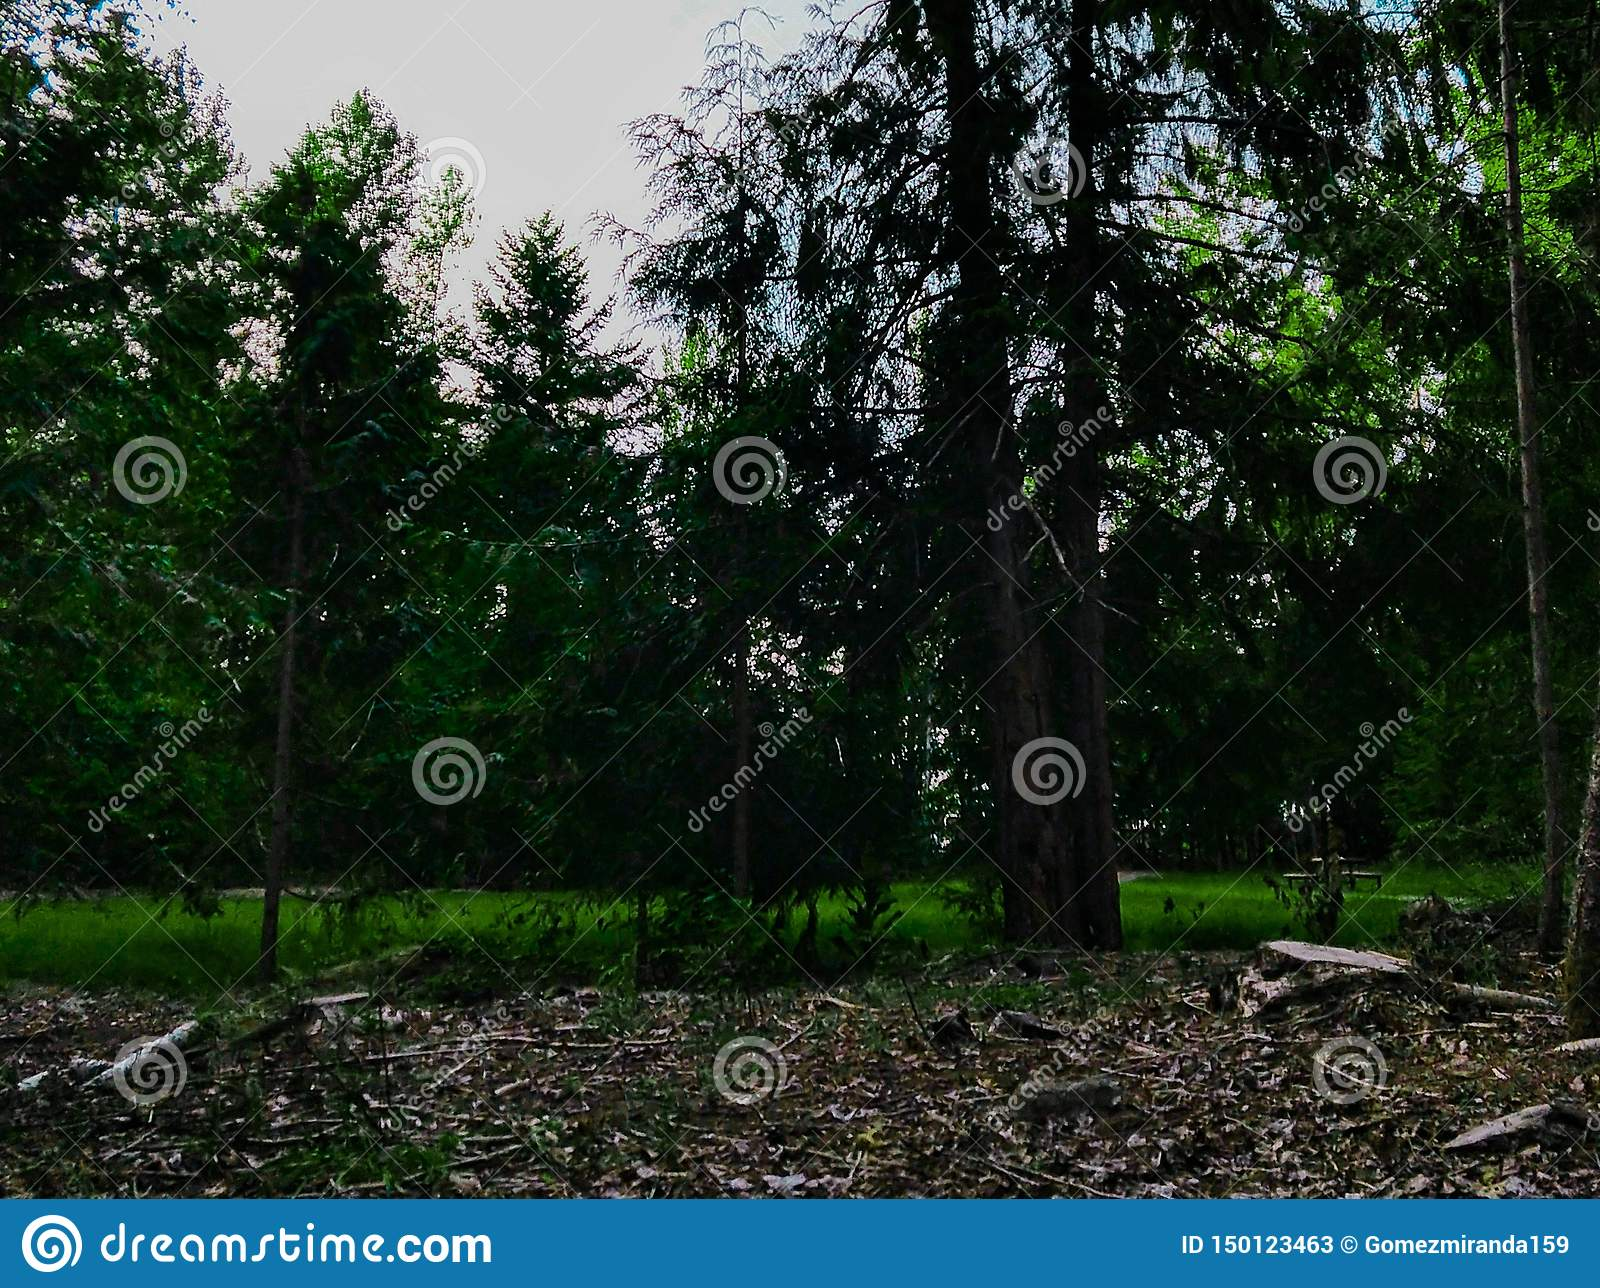 Pacific Northwest wooded landscape